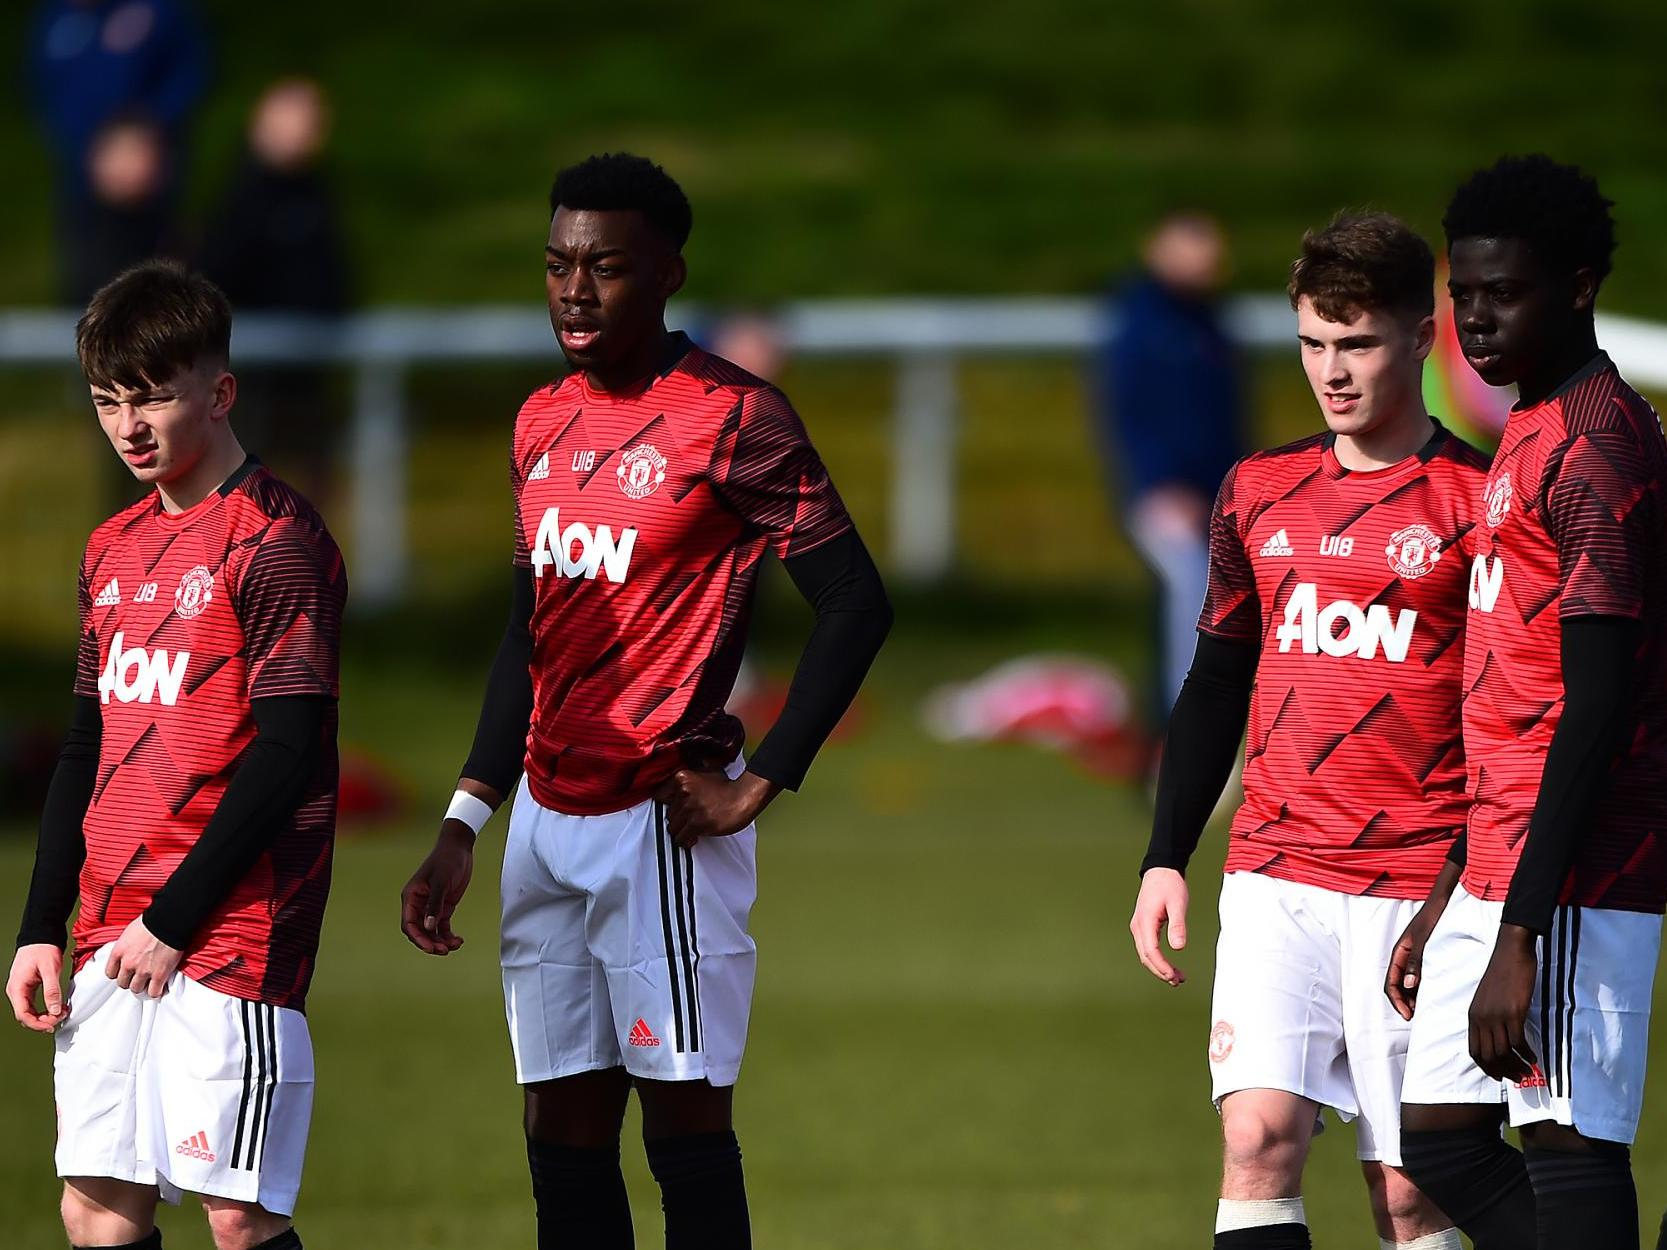 Manchester United Decide Not To Release Youth Players Amid Coronavirus Pandemic The Independent The Independent